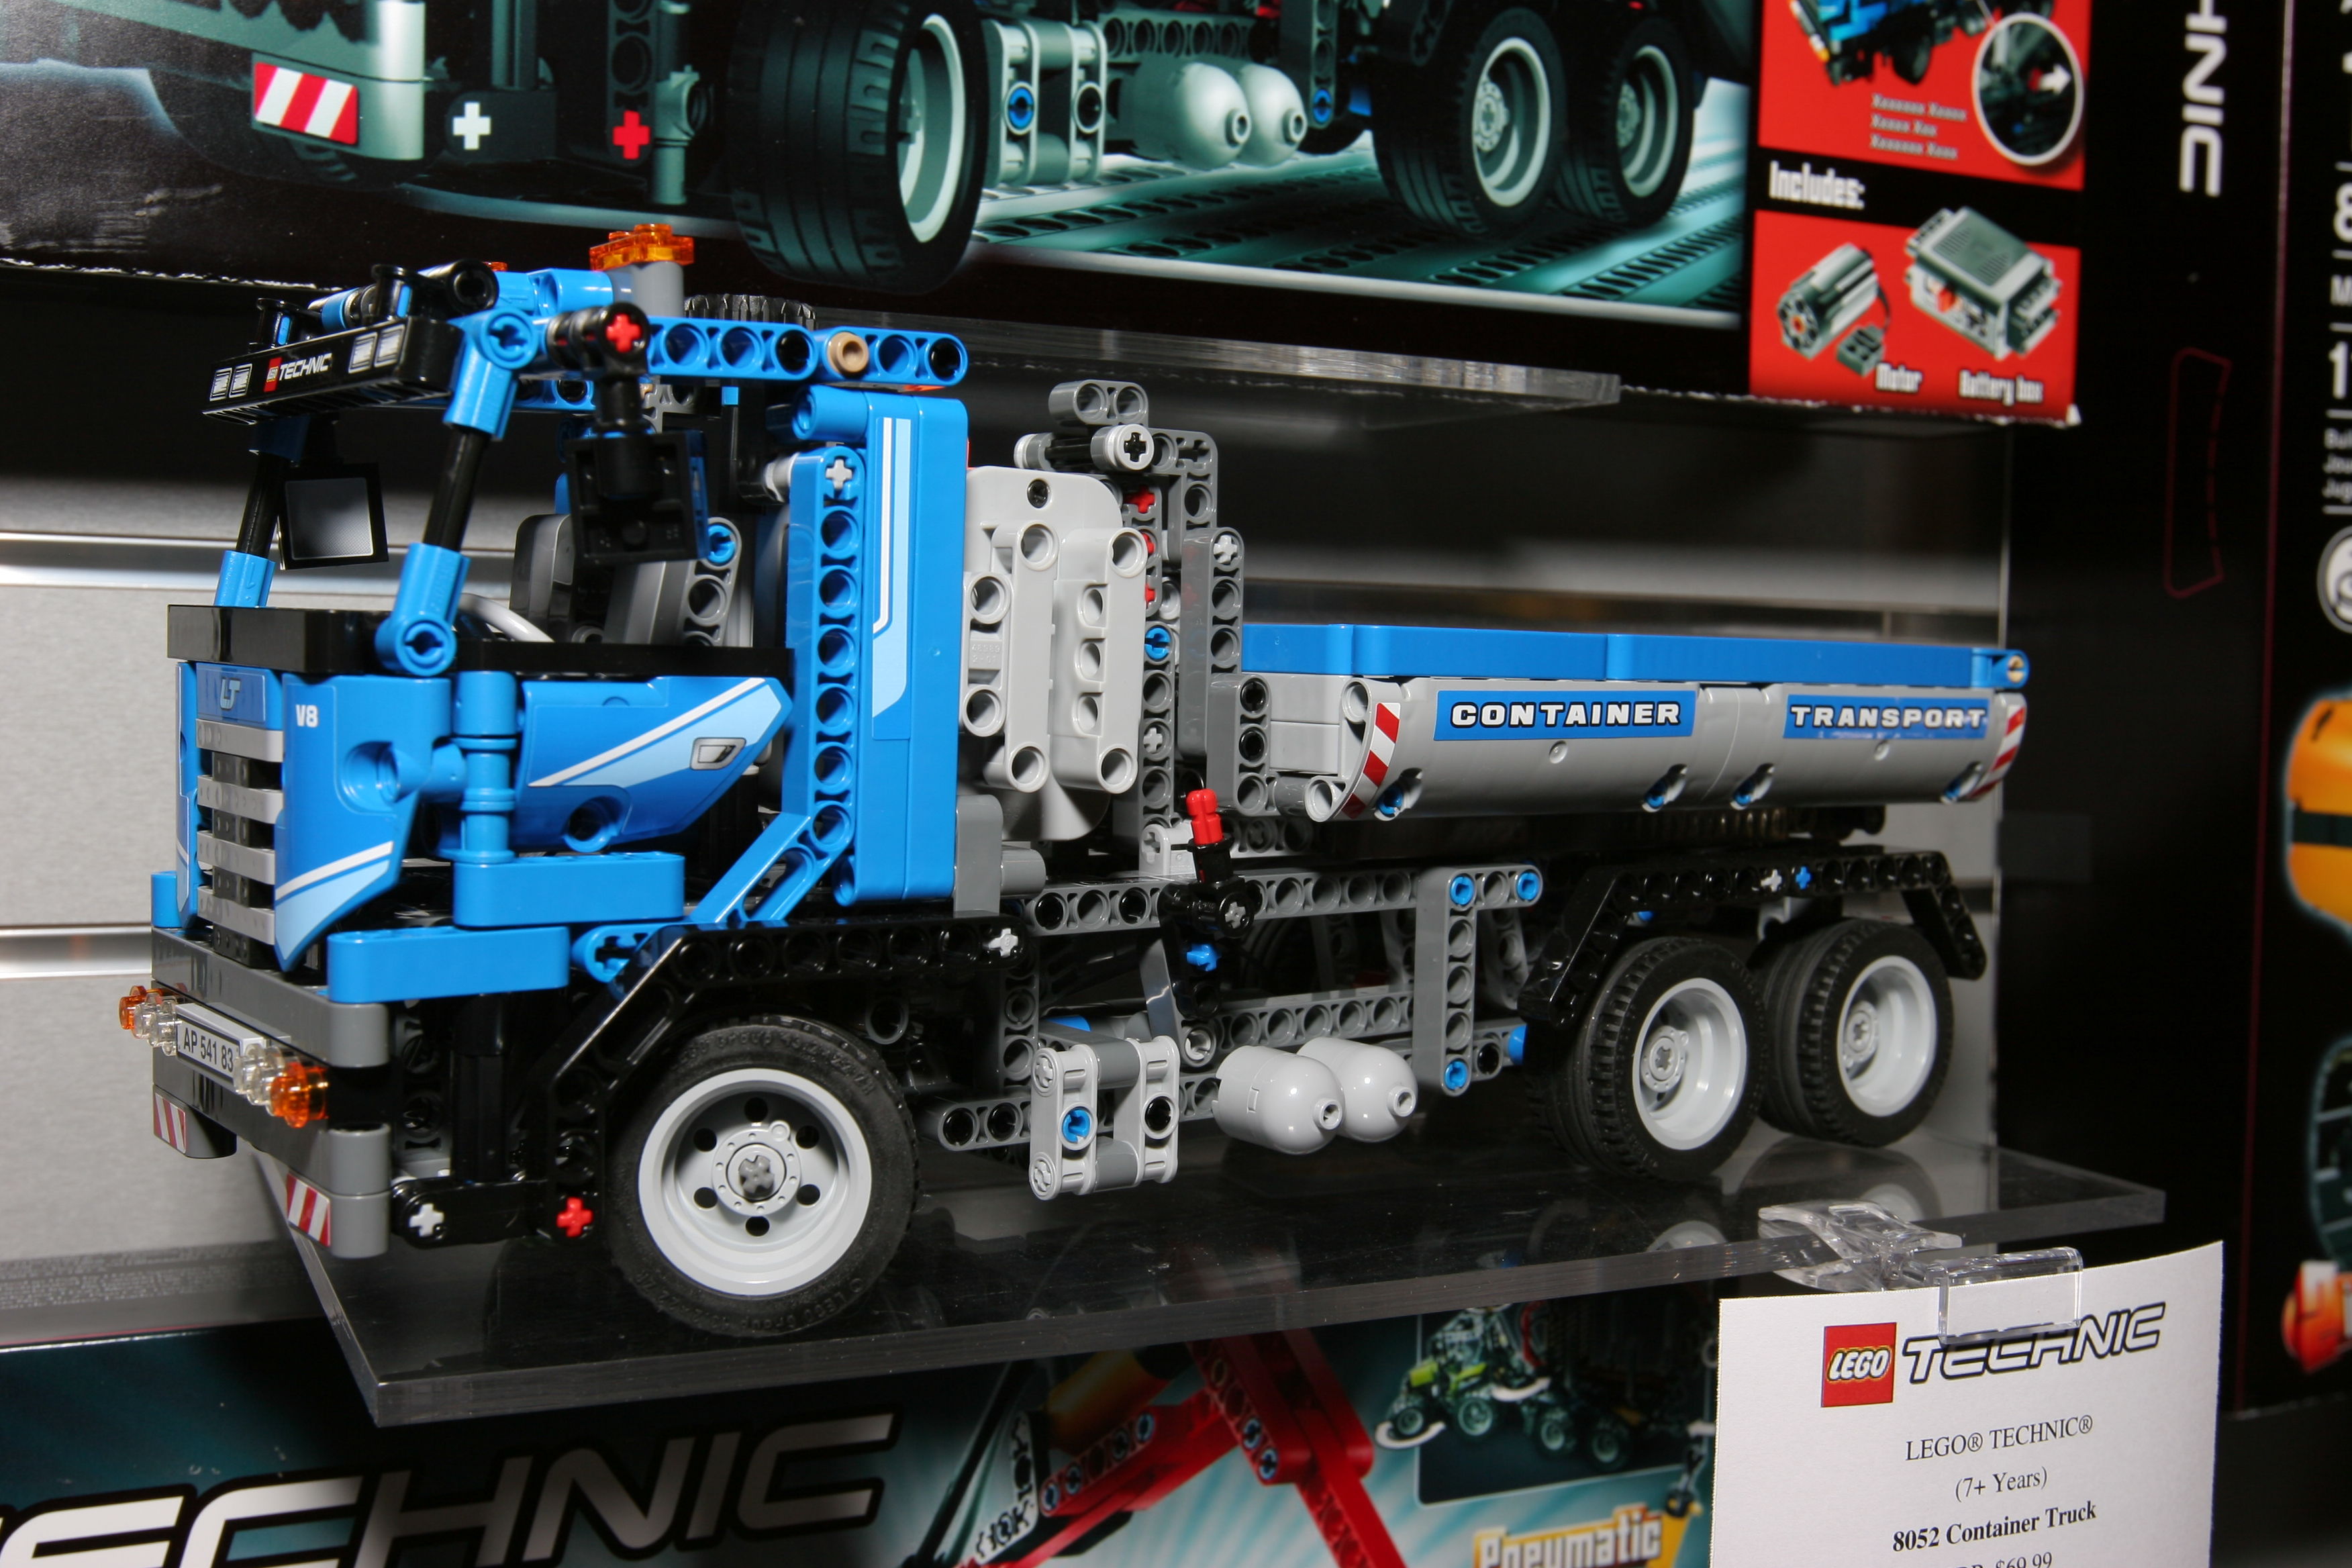 Technicbricks High Res Pictures Of 2h10 Technic Sets Now From Ny